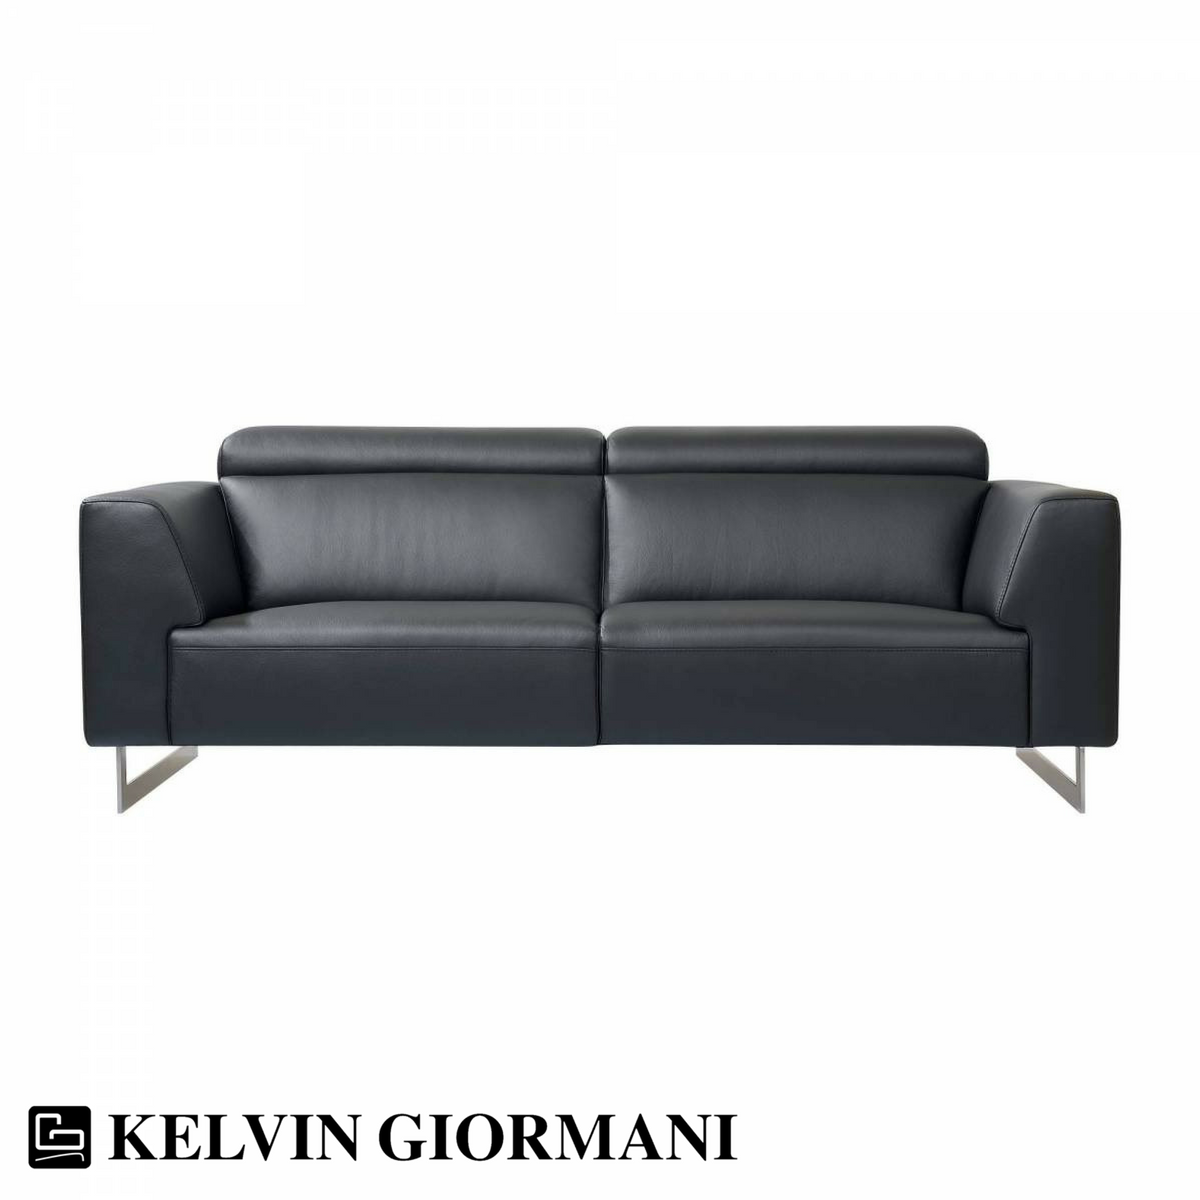 Best Leather Sofas In Singapore: Napola Black Leather Sofa By Kelvin Giormani